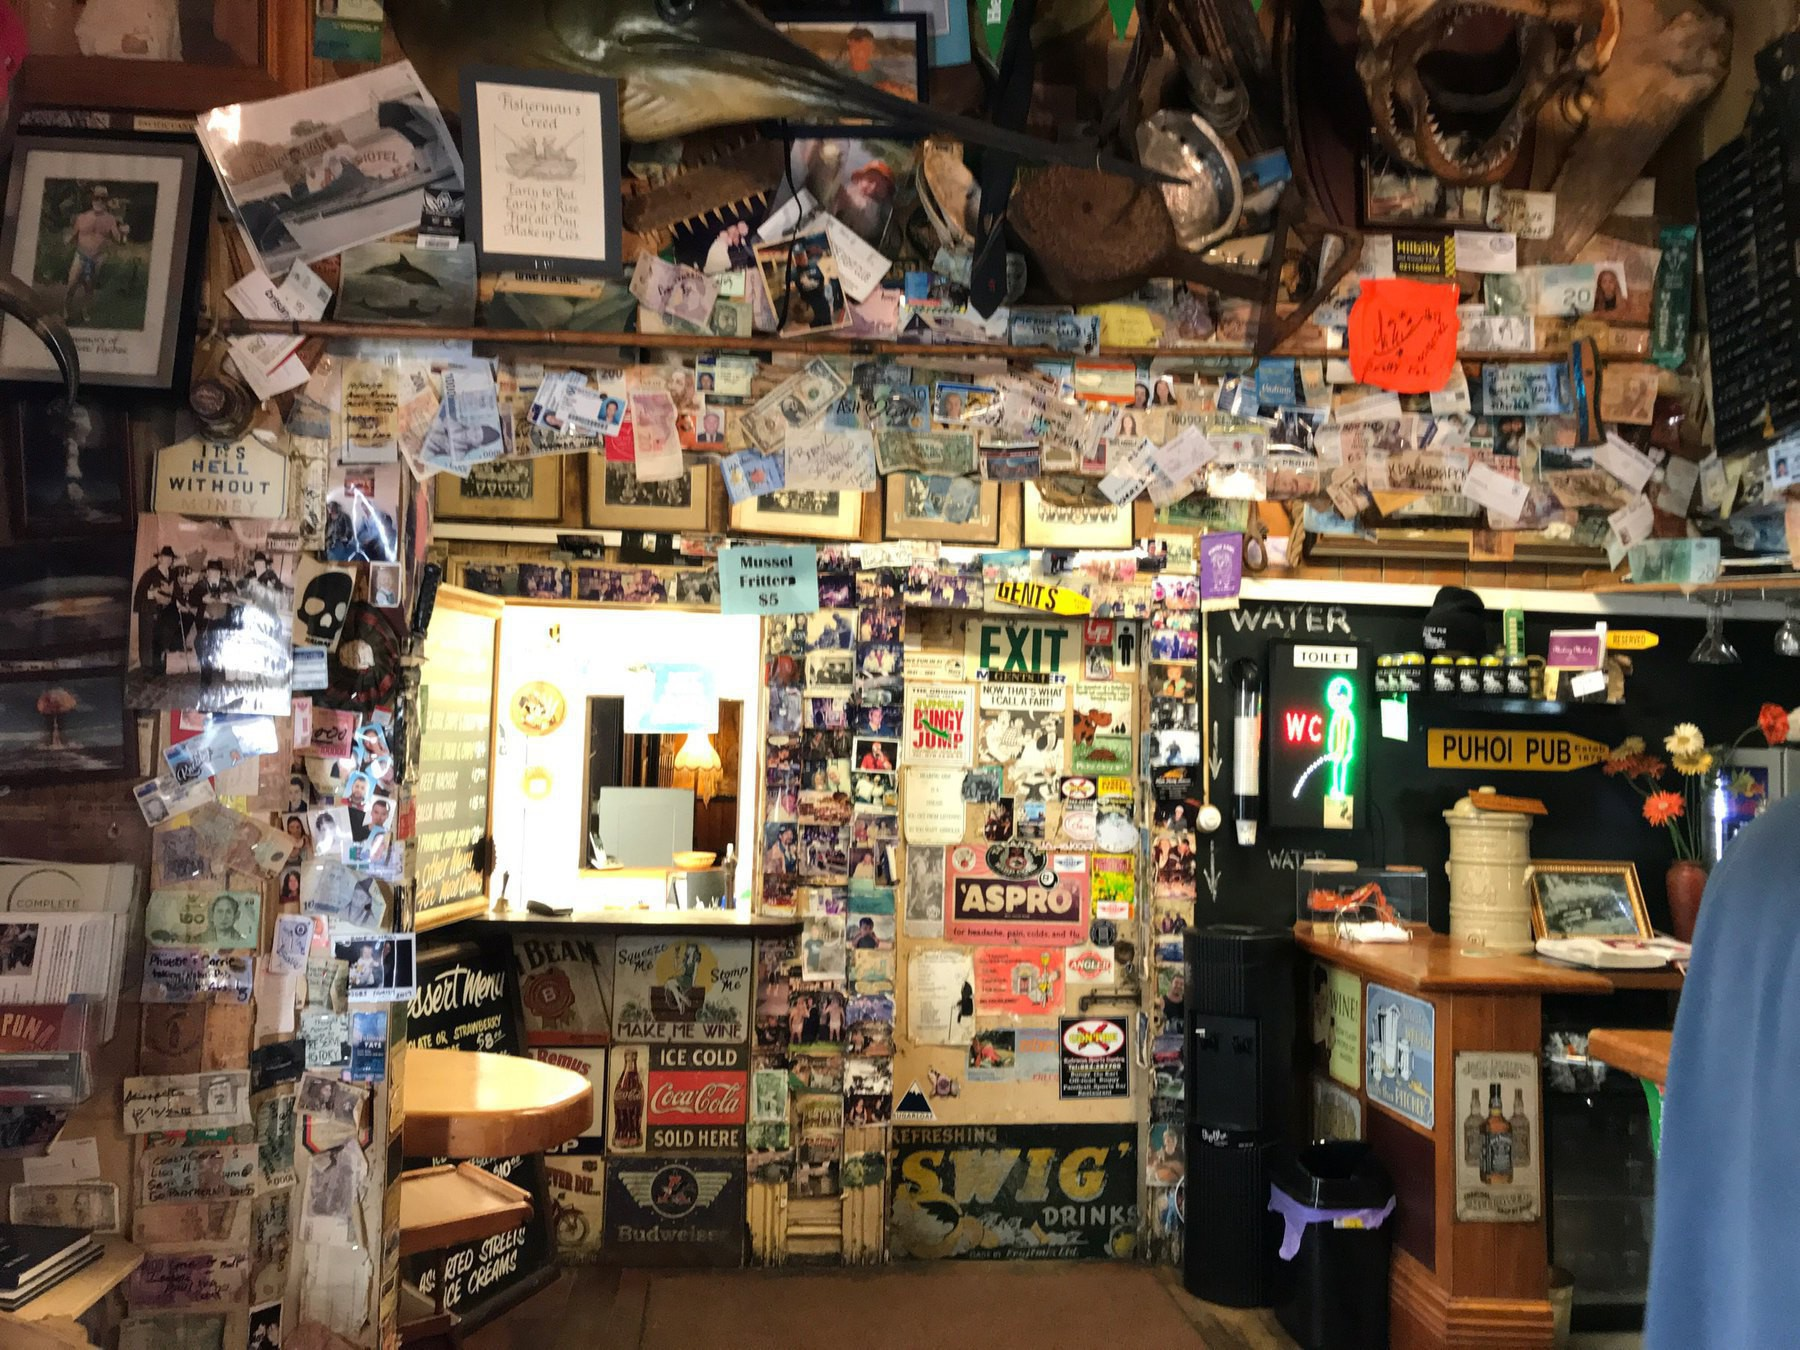 Walls of the pub absolutely covered with pictures, postcards and other paraphernalia.